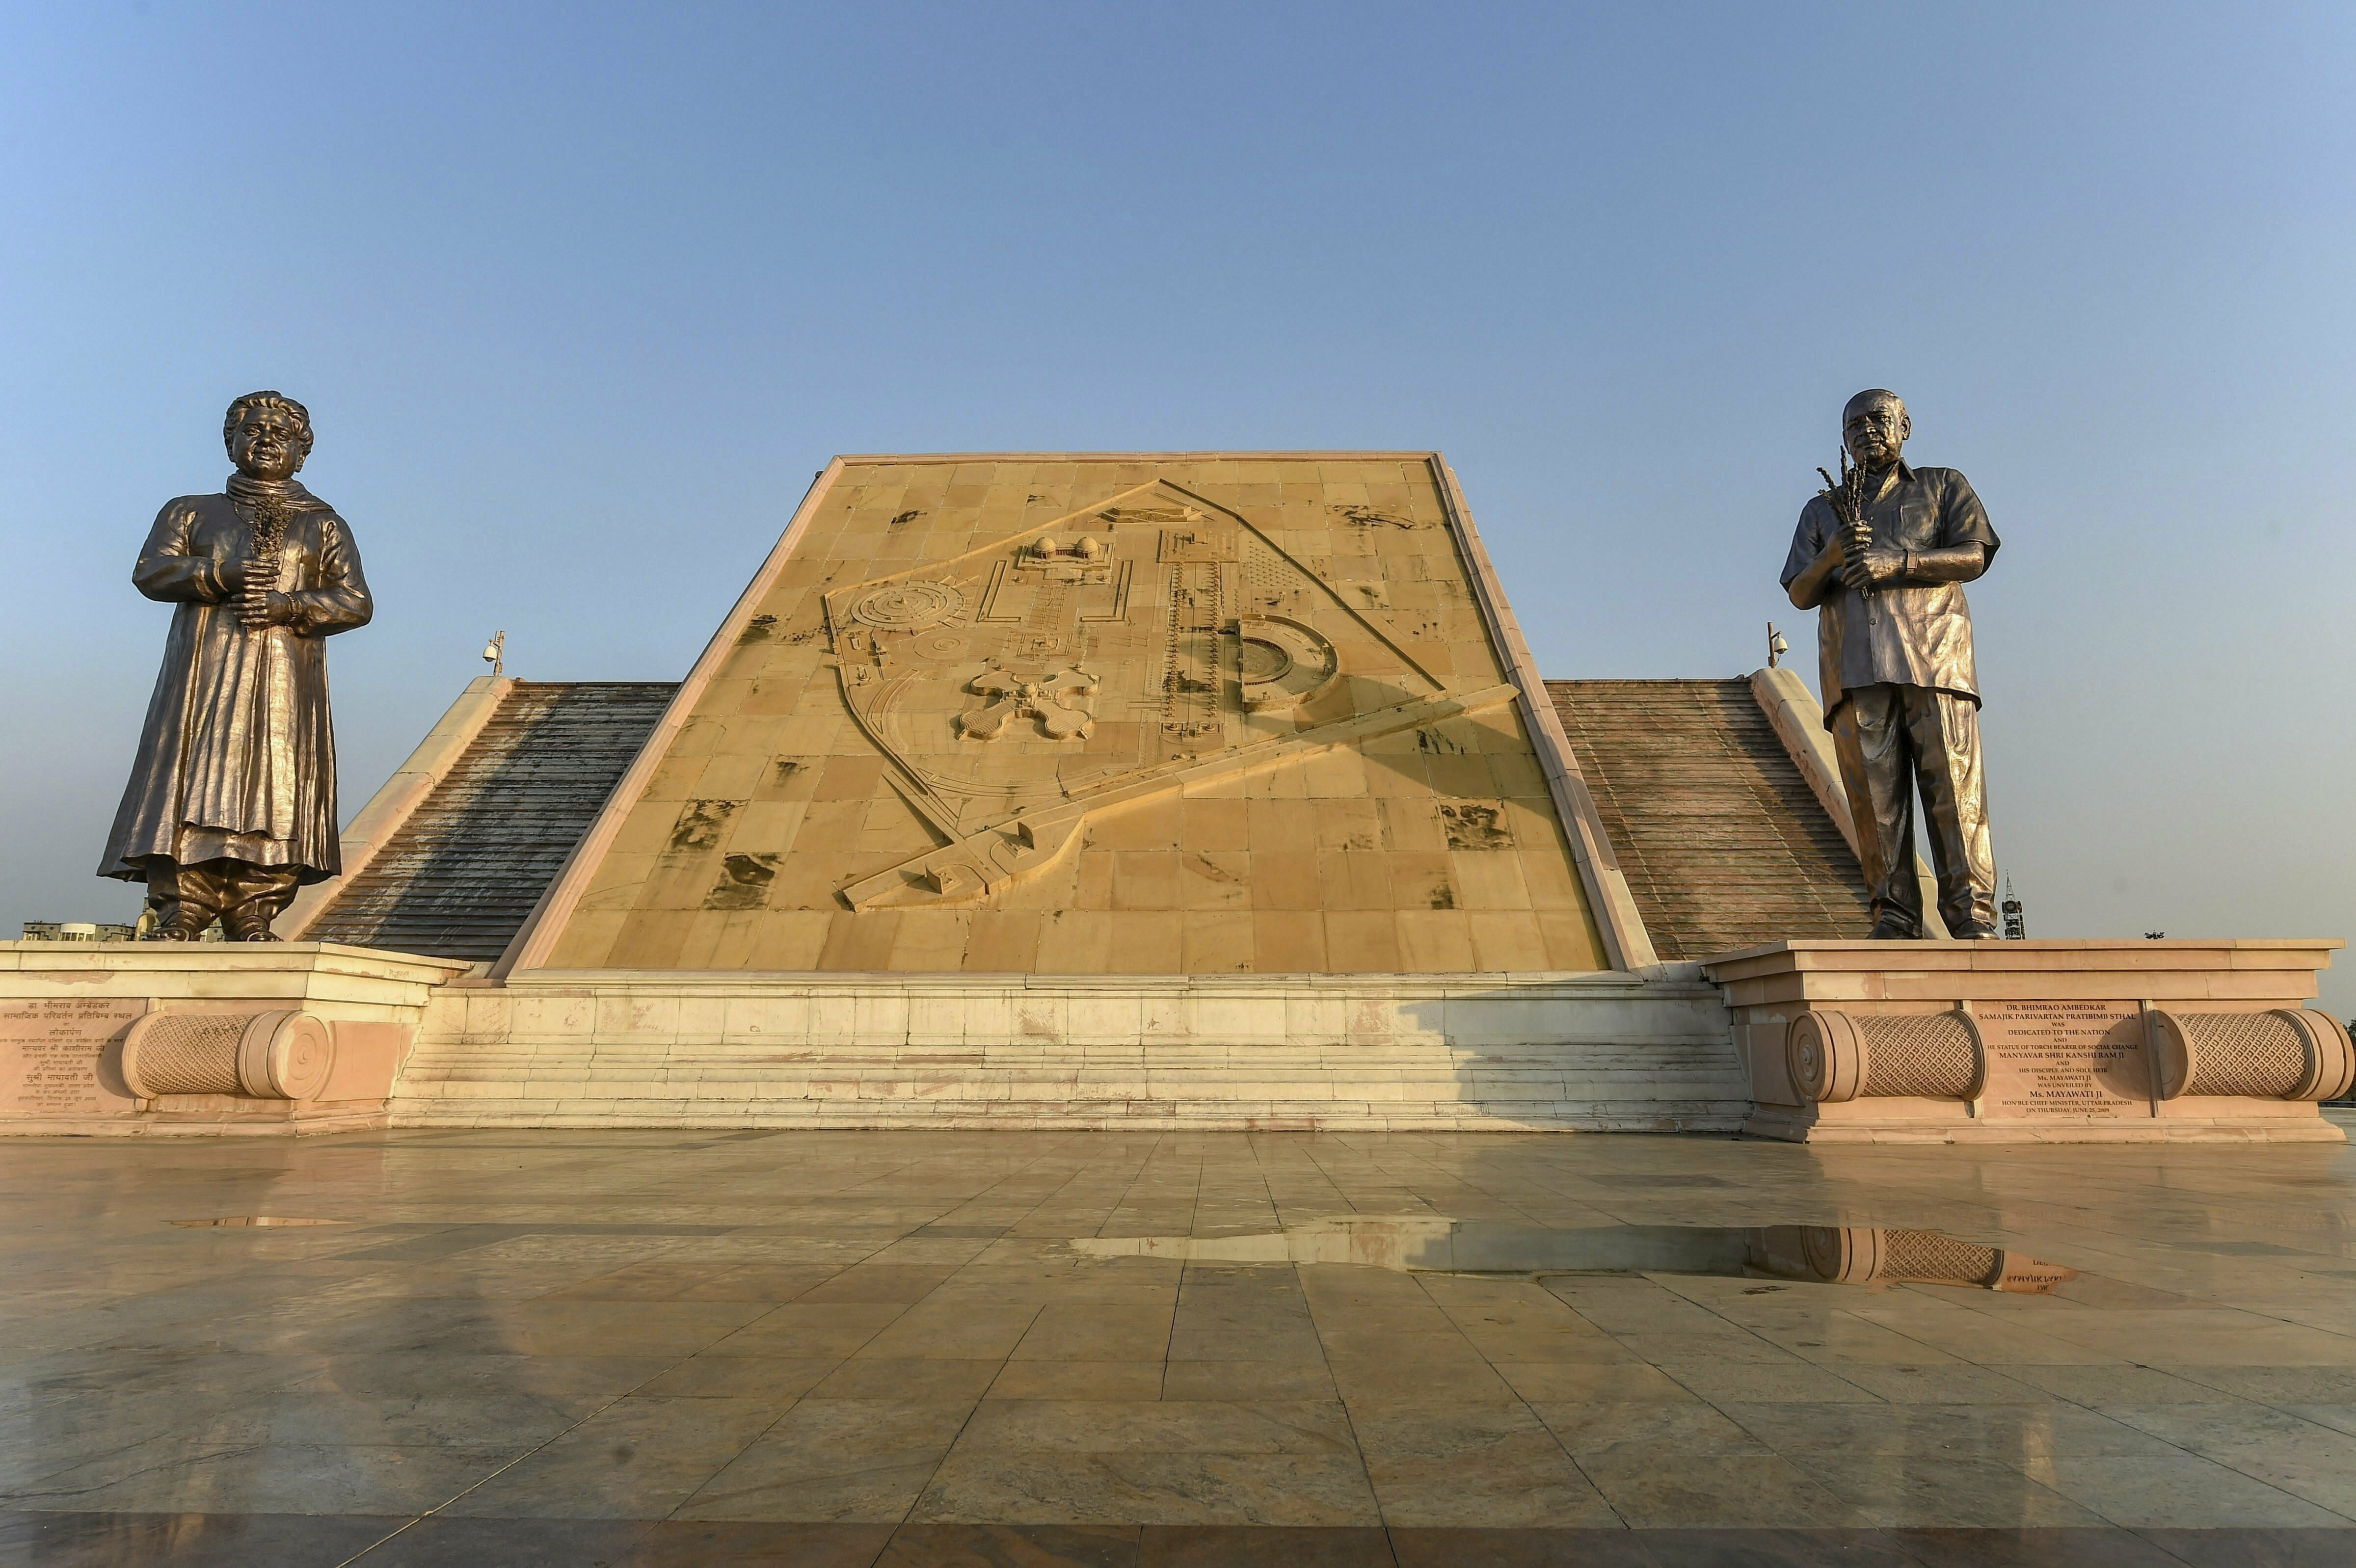 A view of statues of BSP founder Kanshi Ram and BSF chief Mayawati, at Ambedkar Park in Lucknow